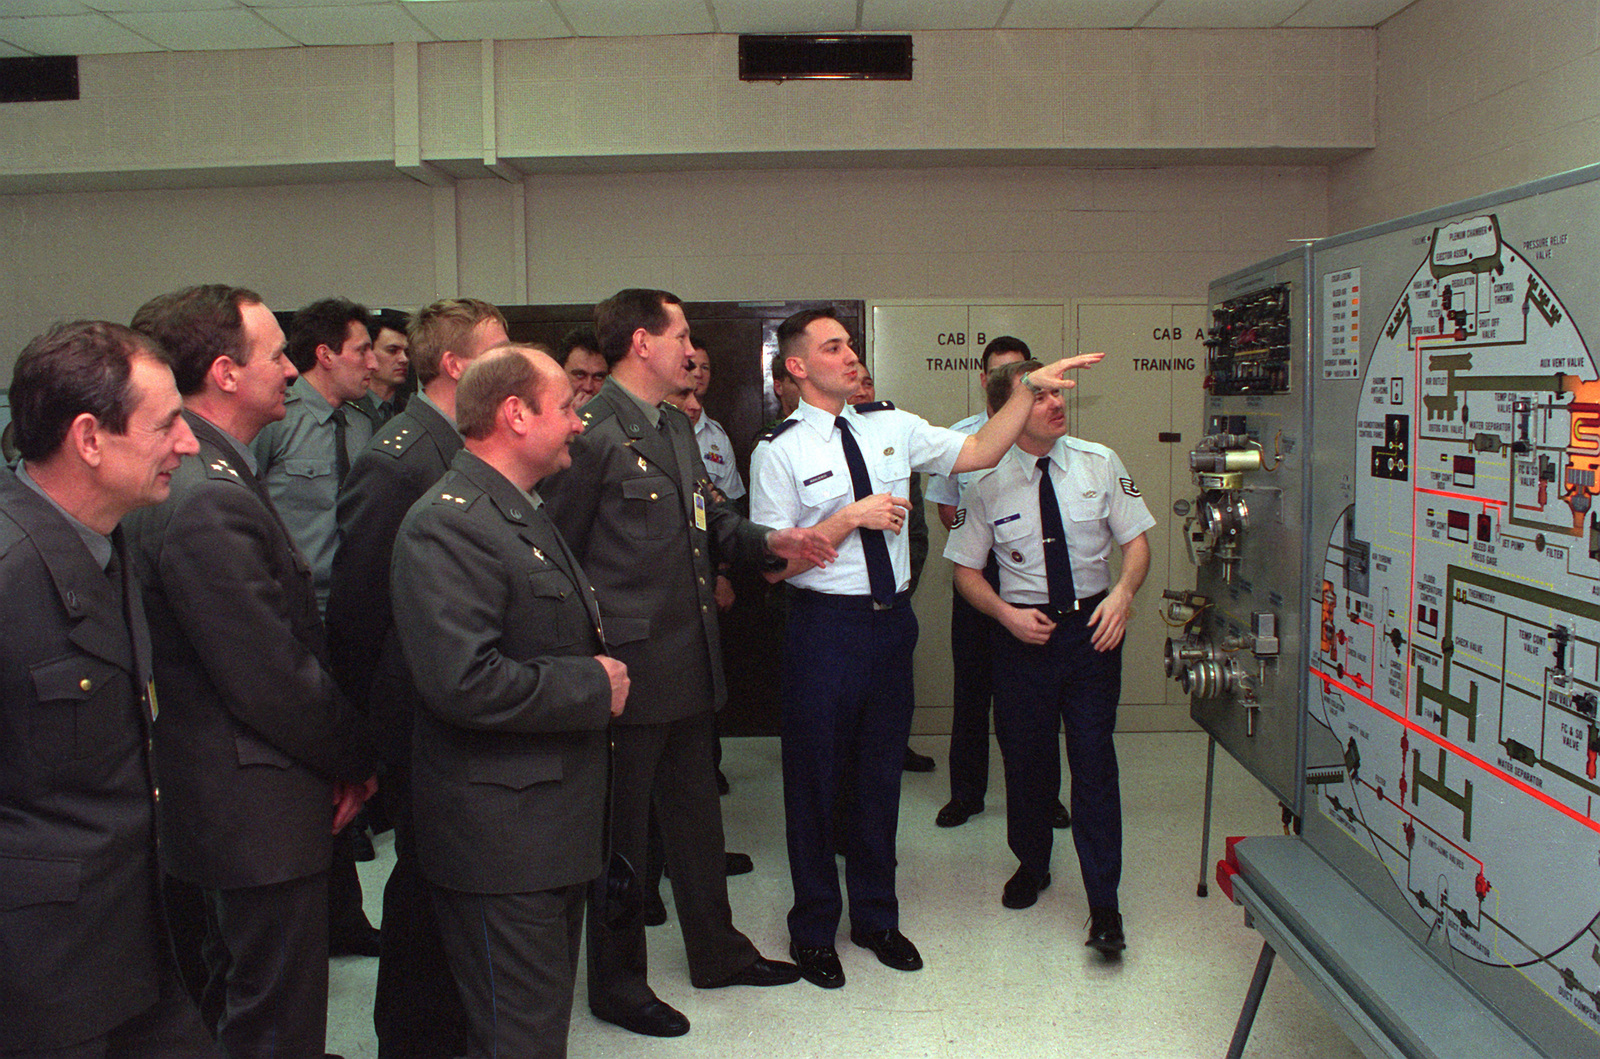 1ST LT. George Moraczewski, USAF Interpreter, explains the function of the Hydraulic Brake System at the C-130 Training Detachment to the Ukrainian Air Force Officers